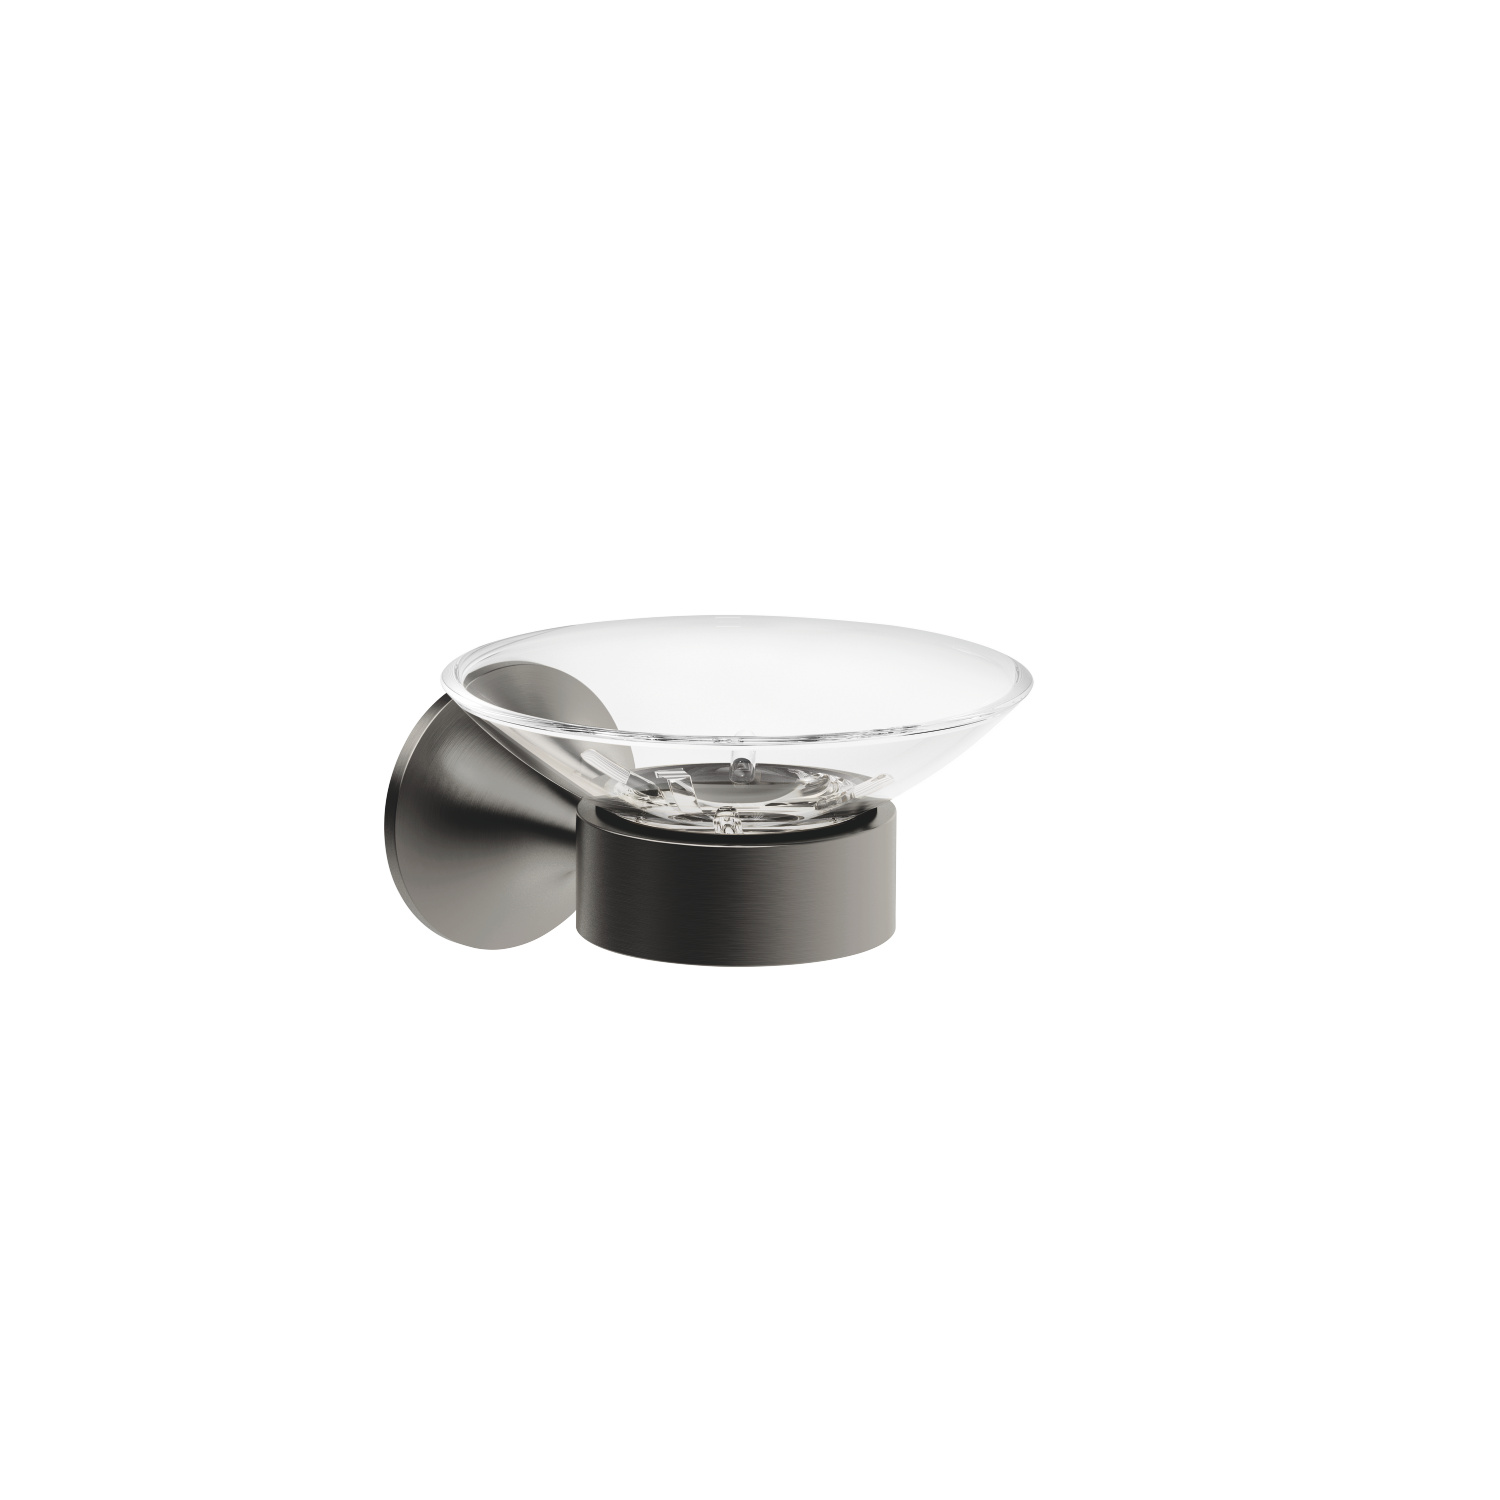 Soap dish wall model - Dark Platinum matt